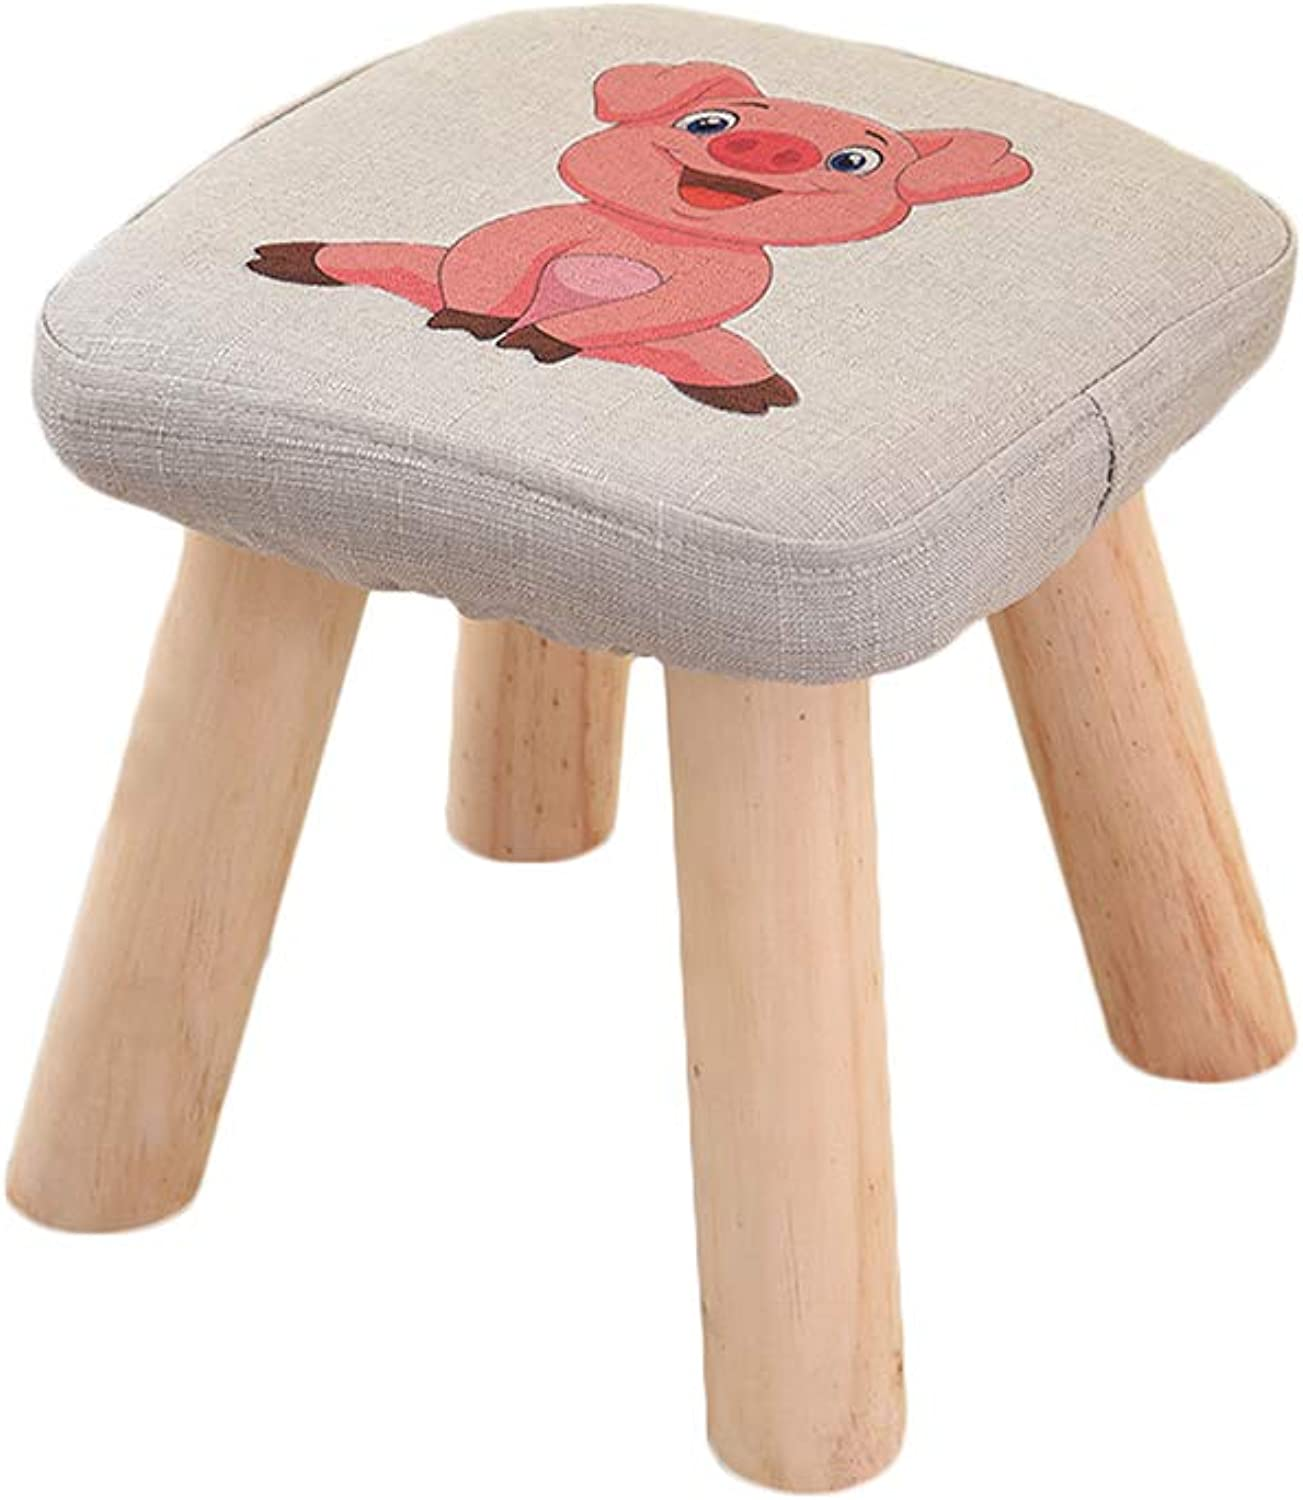 RHHWJJXB Small Stool Home shoes Bench Stool Solid Wood Fabric Fashion Creative Adult Small Chair Sofa Small Wooden Bench (color   C)